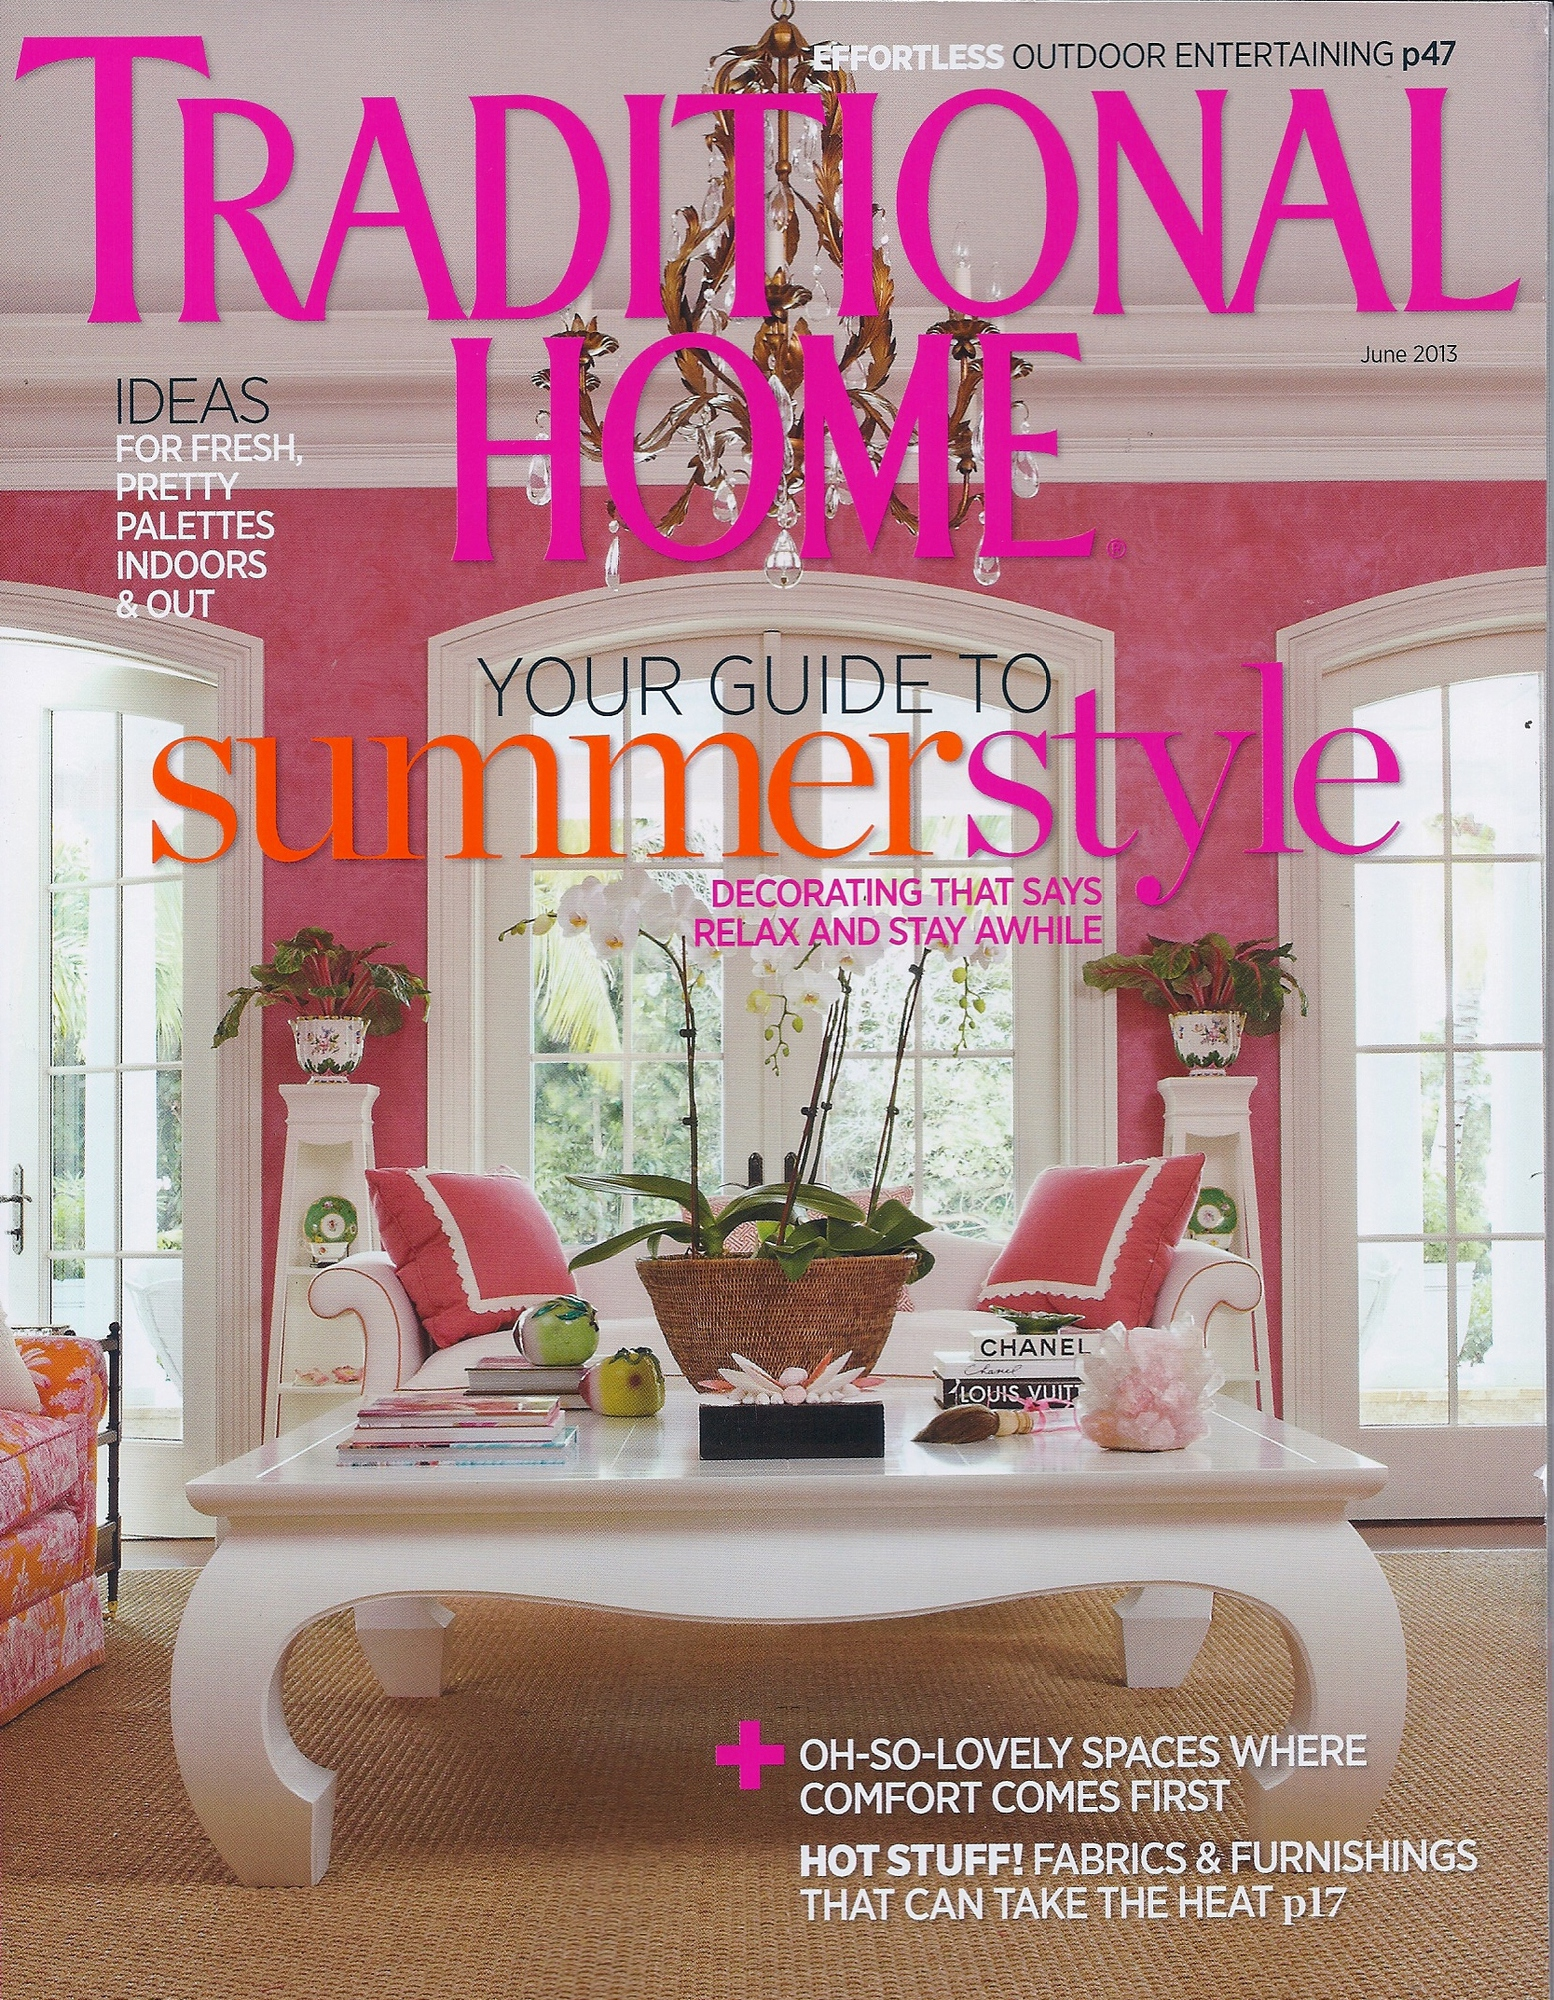 2013/06 Traditional Home Cover